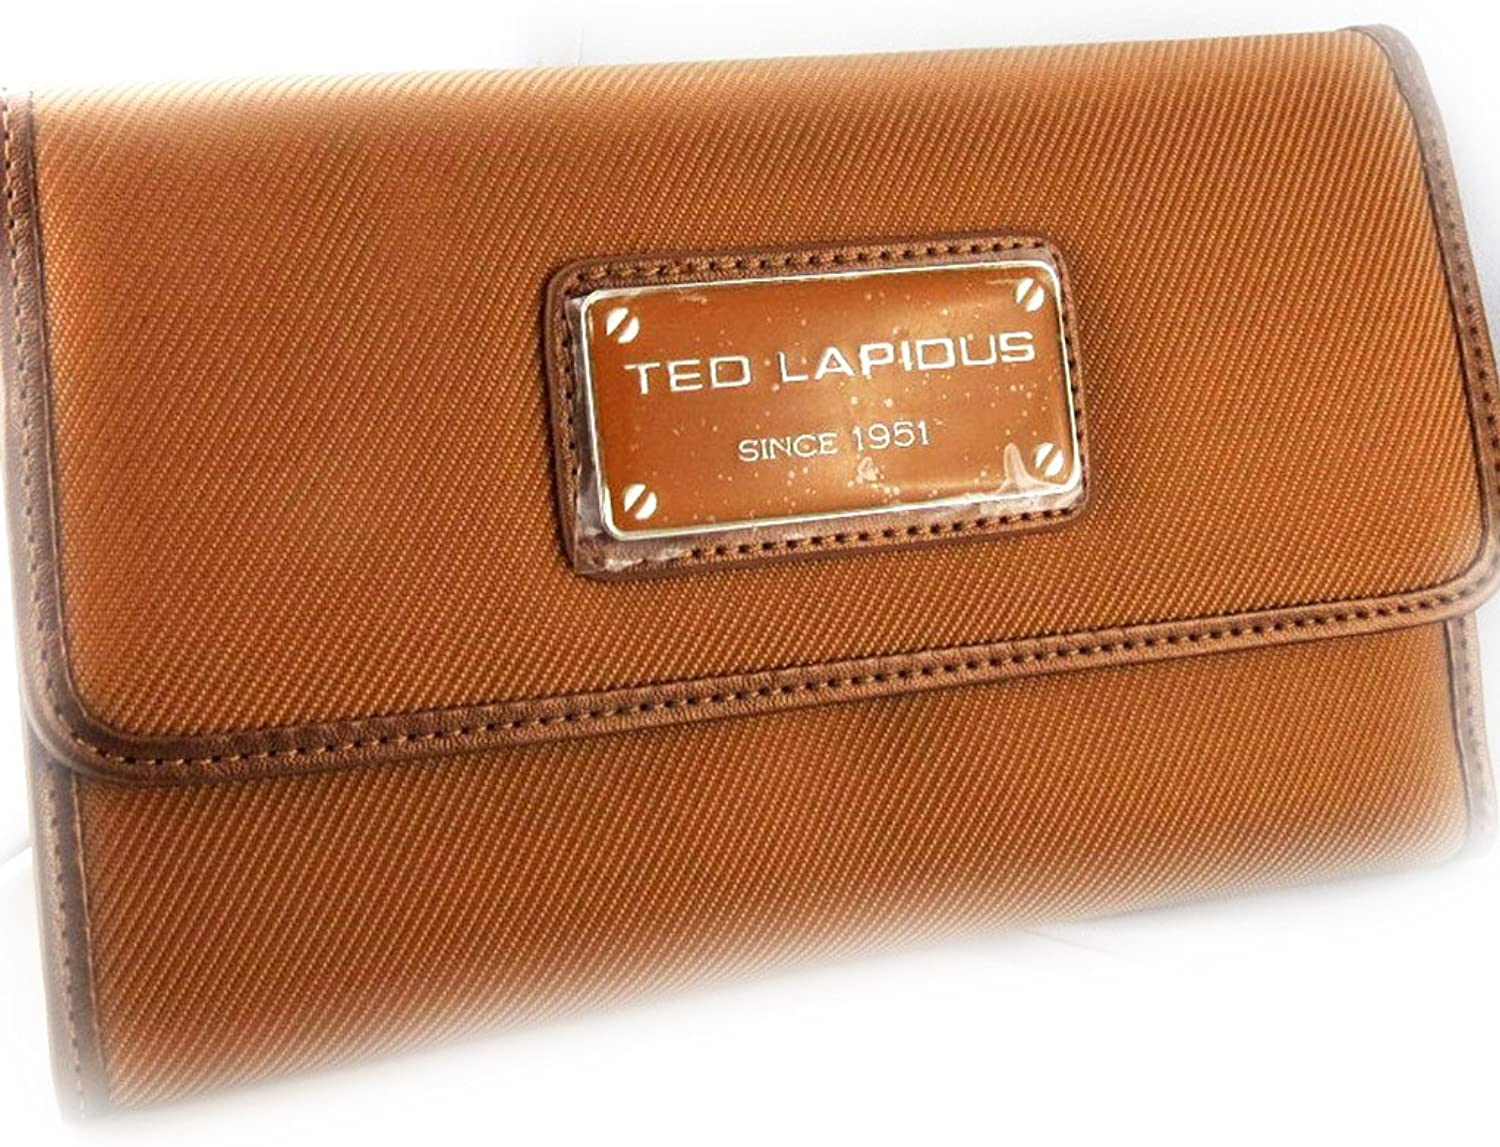 Grand wallet purse 'Ted Lapidus' camel.